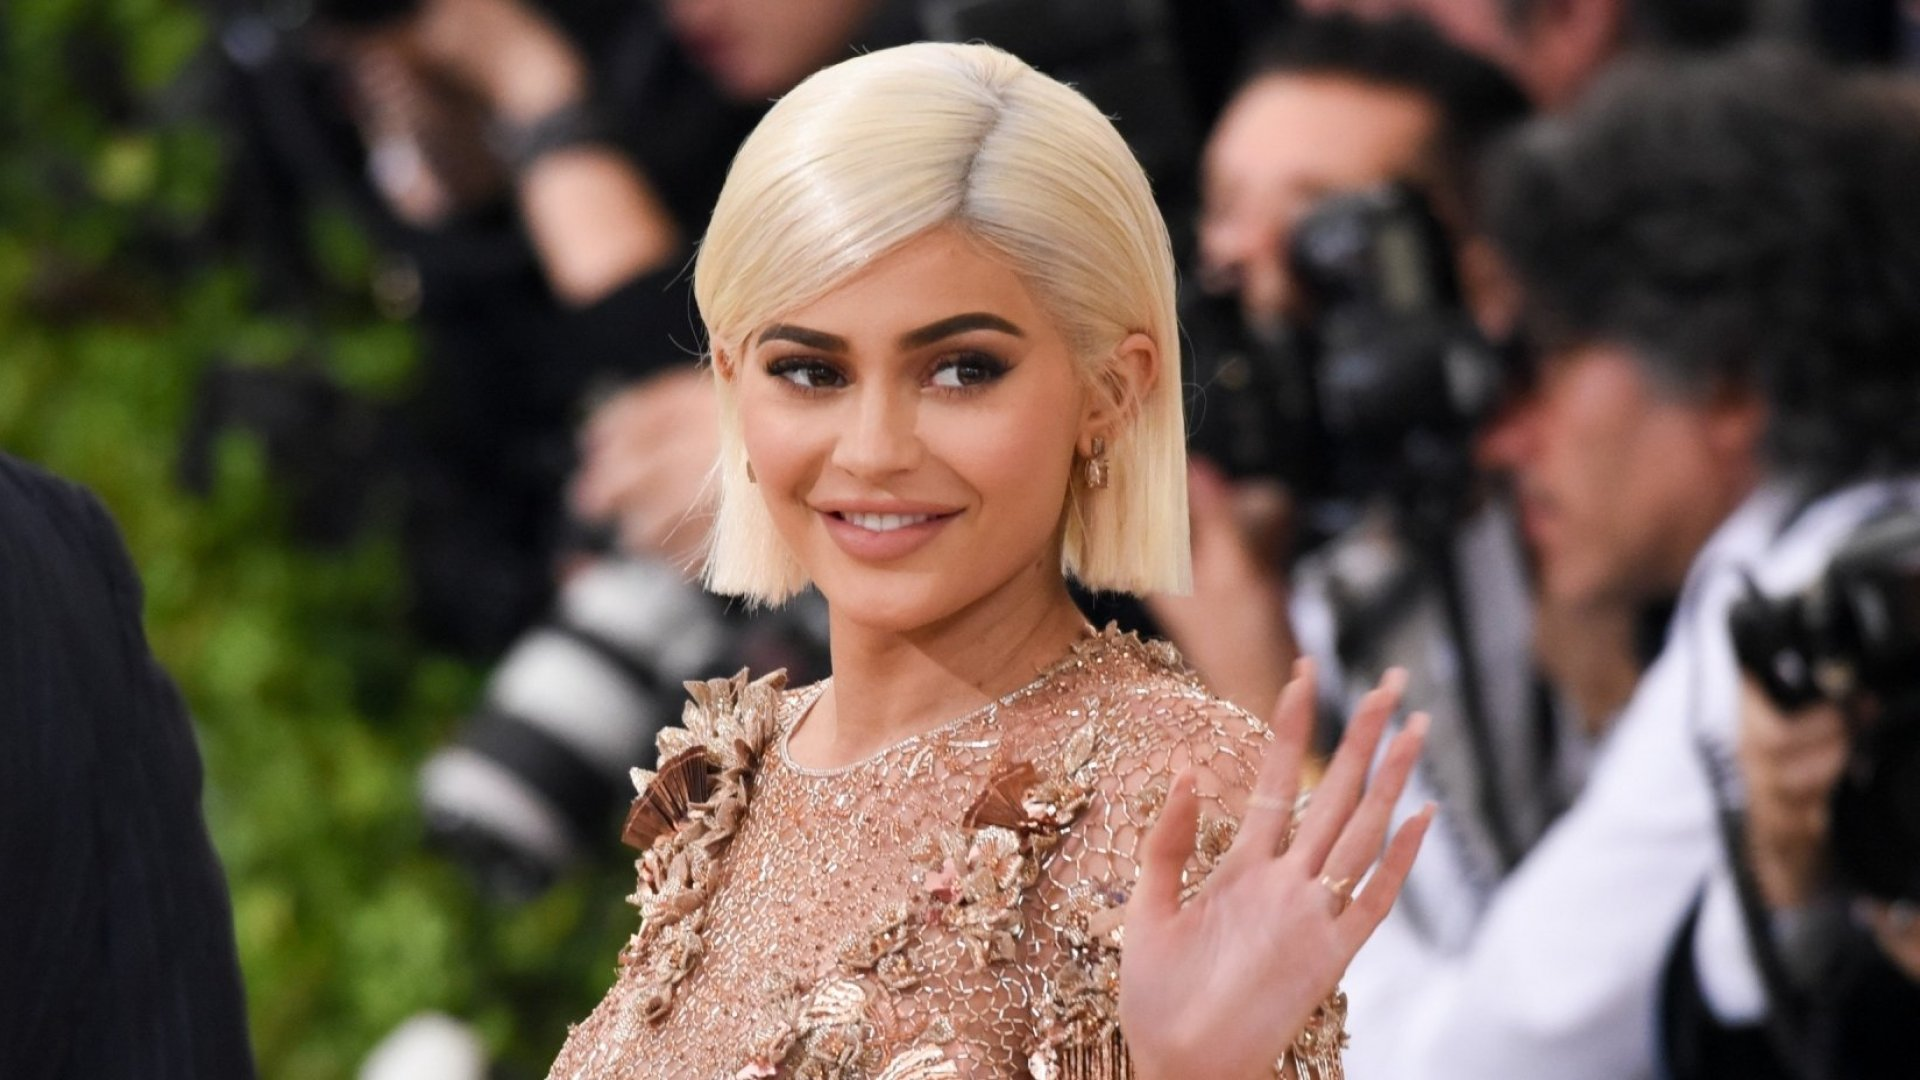 Kylie Jenner Just Taught Snapchat a $1.3 Billion Lesson (and It Only Took 1 Tweet)